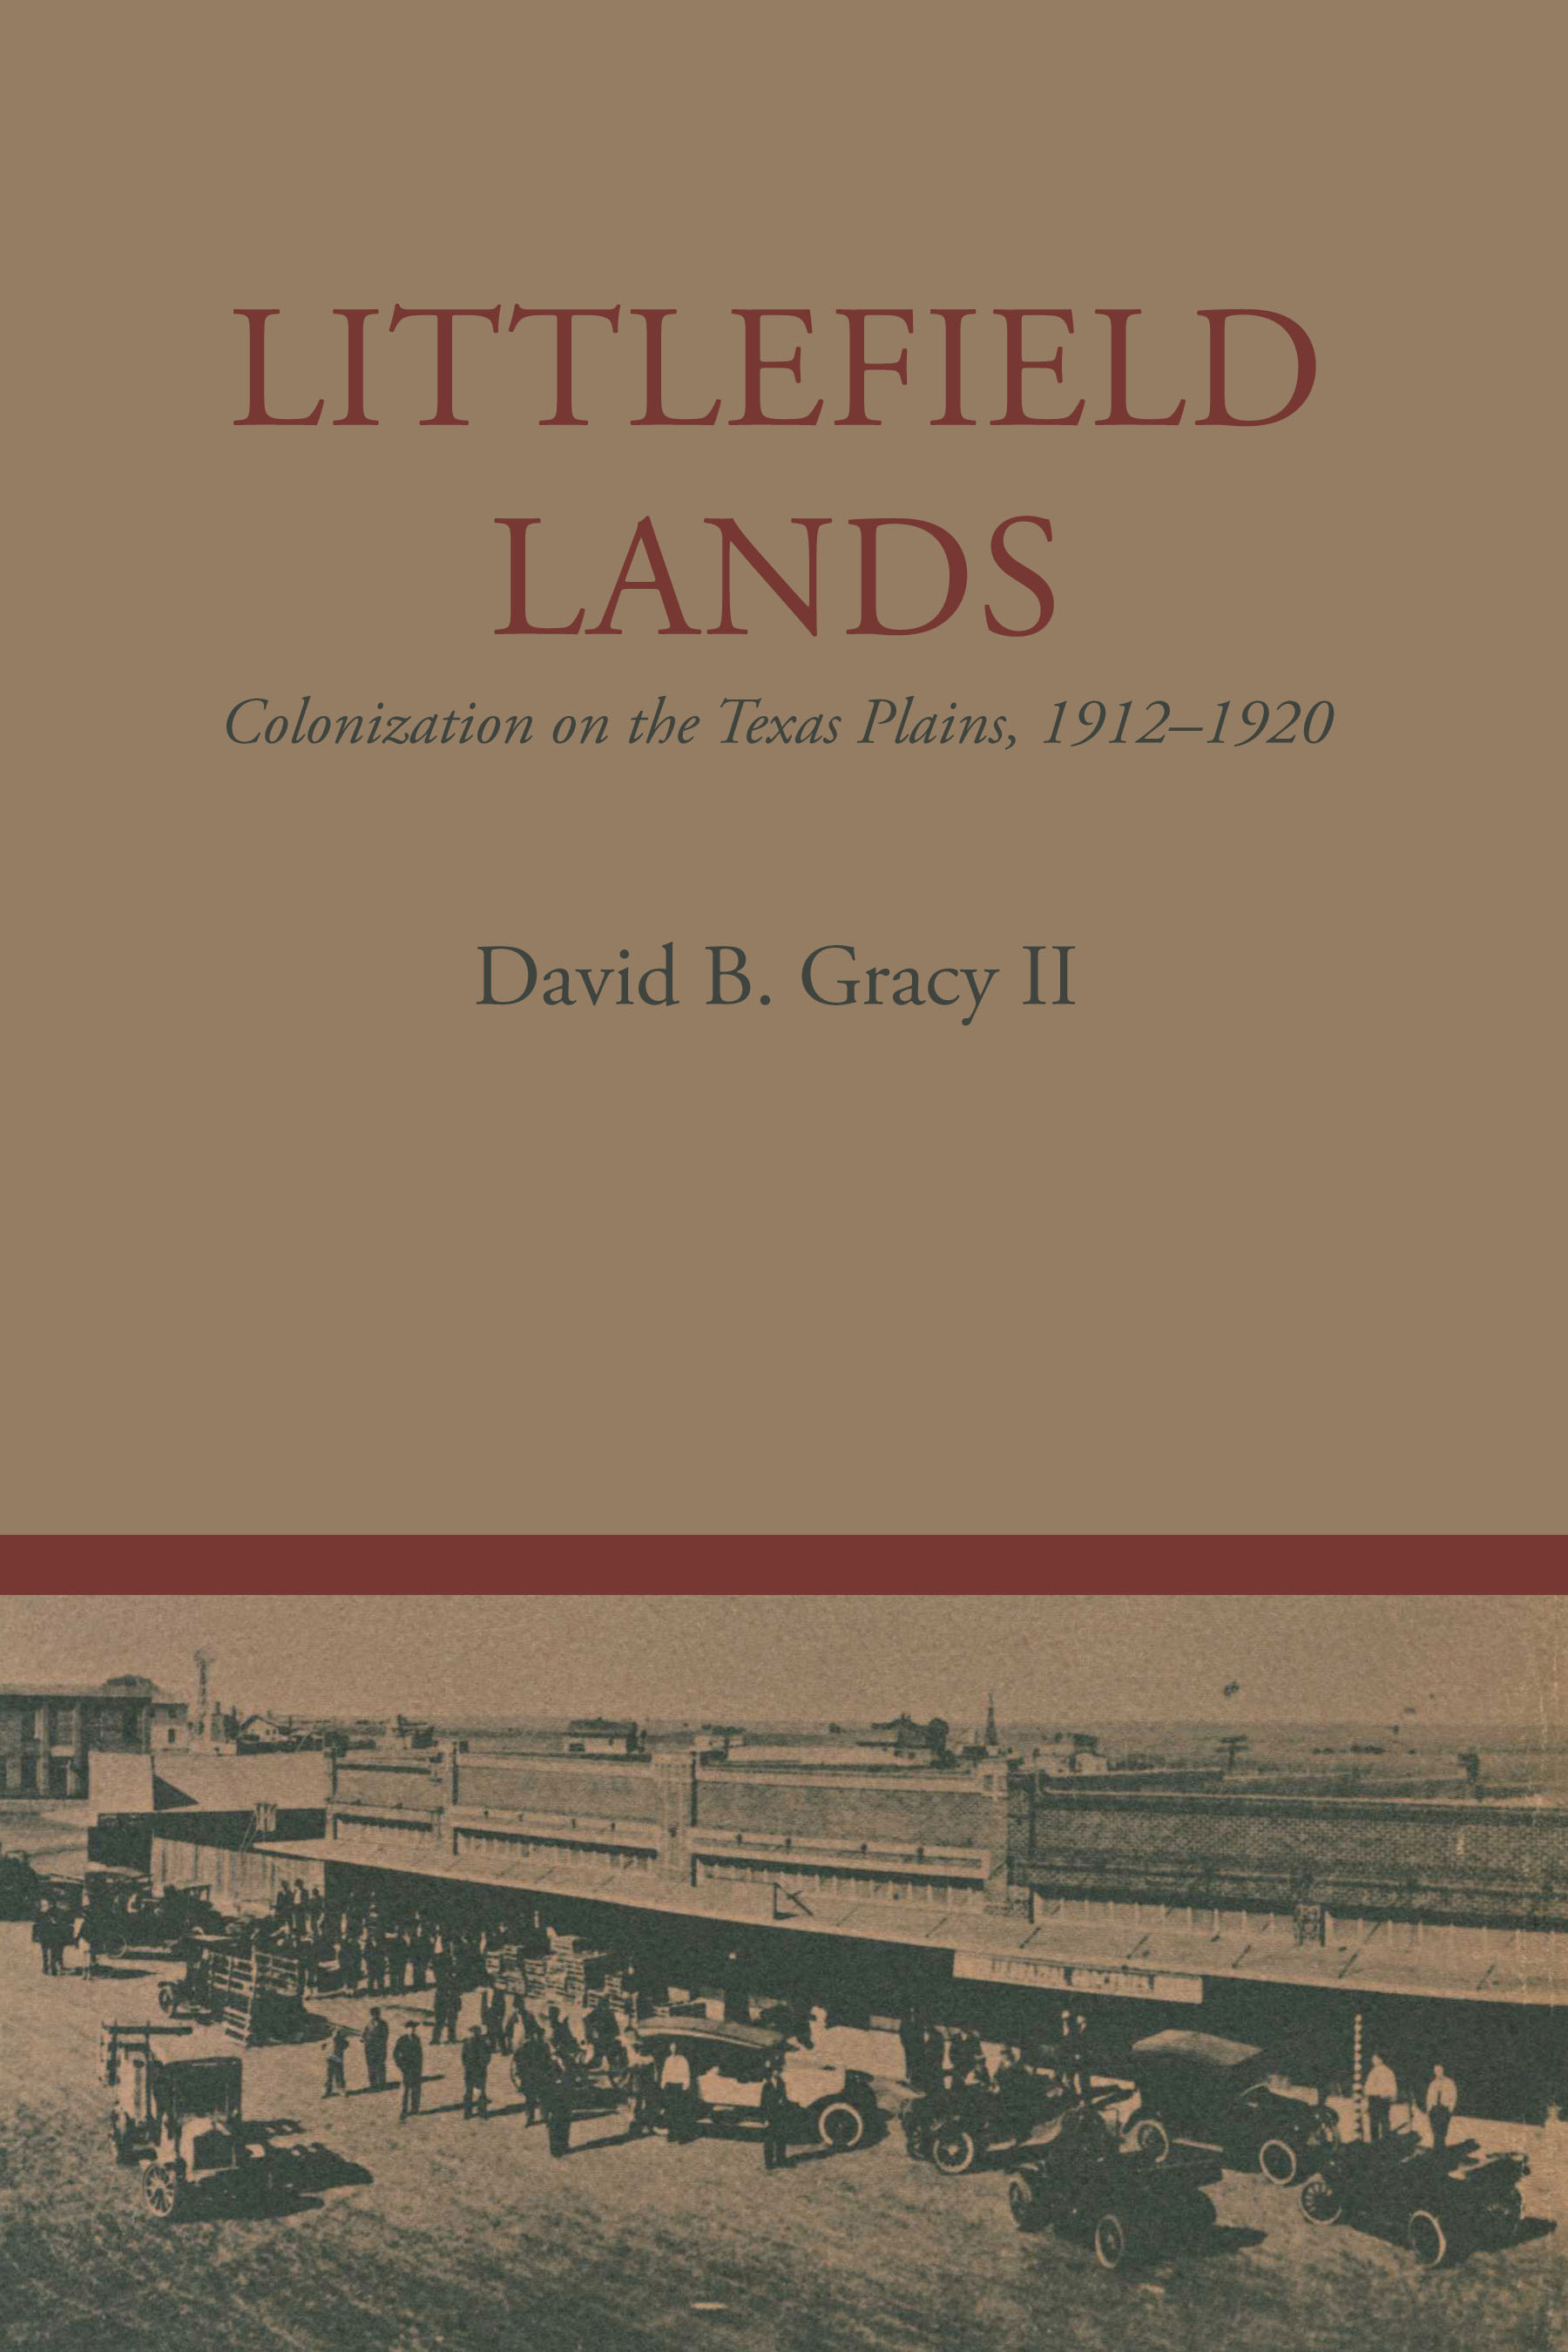 Cover of Littlefield Lands